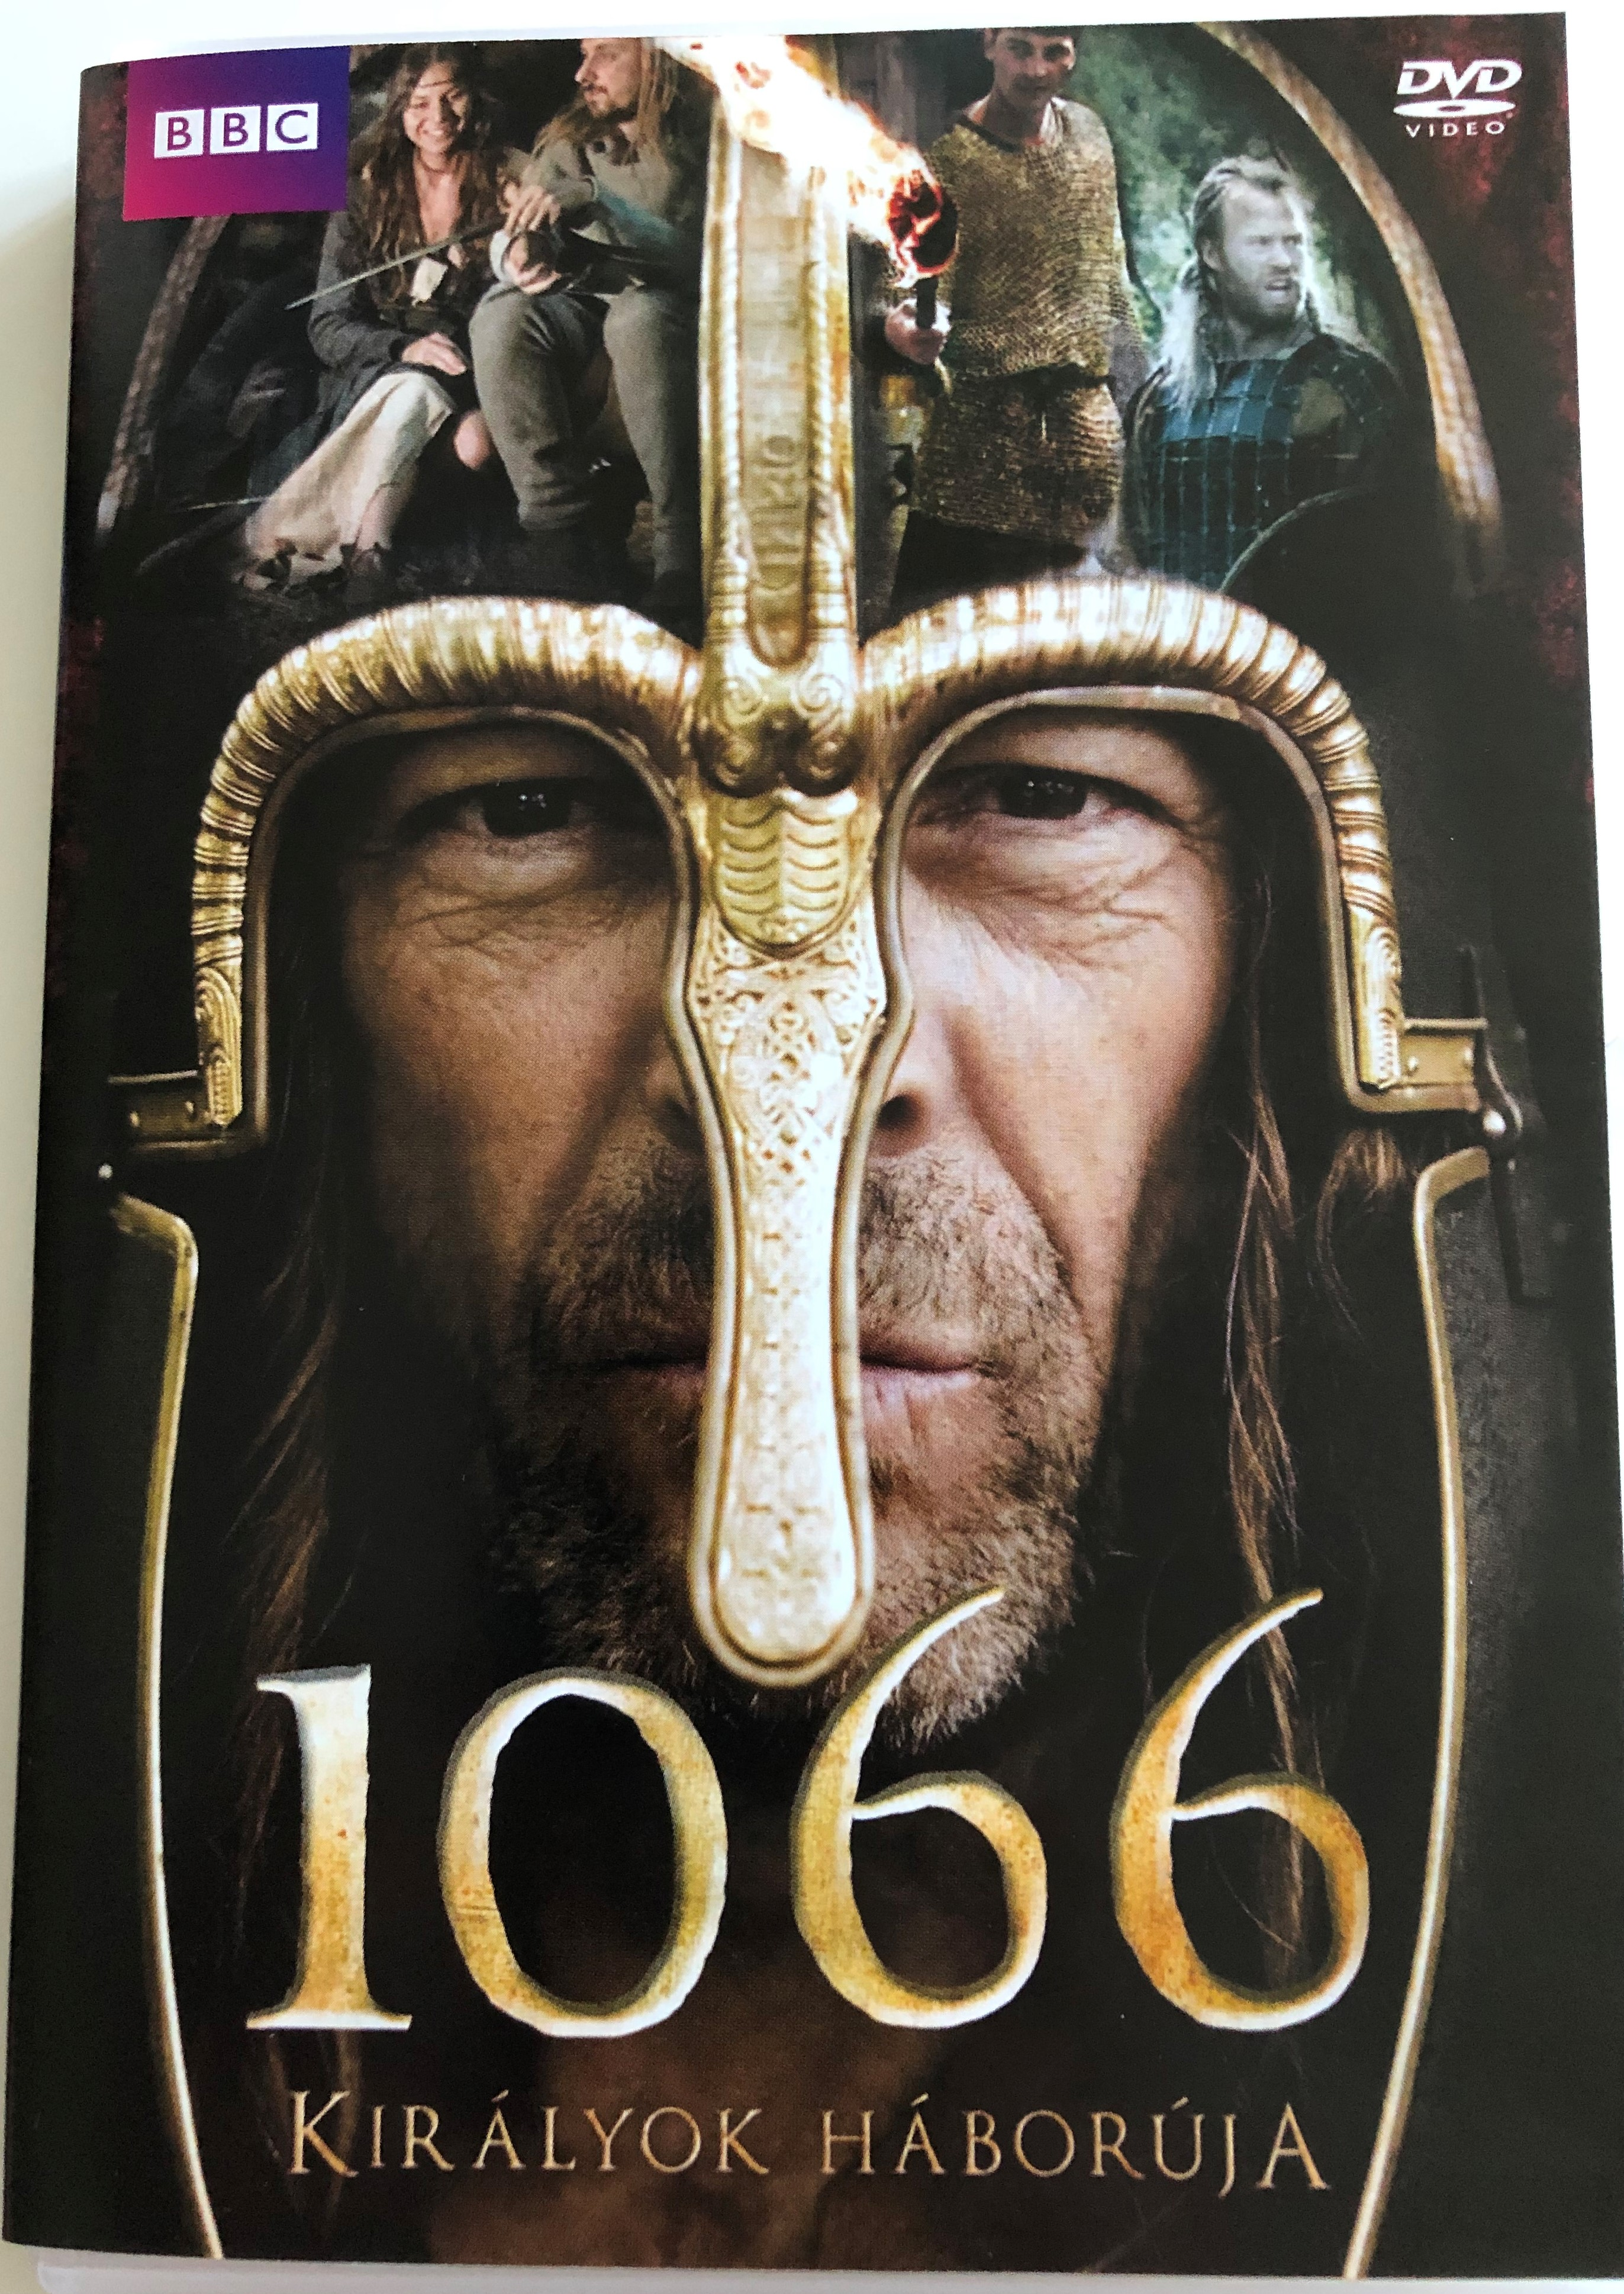 106-the-battle-for-middle-earth-dvd-2009-1066-kir-lyok-h-bor-ja-bbc-3-episodes-on-disc-directed-by-justin-hardy-starring-ian-holm-mike-bailey-francis-magee-tim-plester-s-ren-byder-kate-ambler-gemma-lawrence-1-.jpg